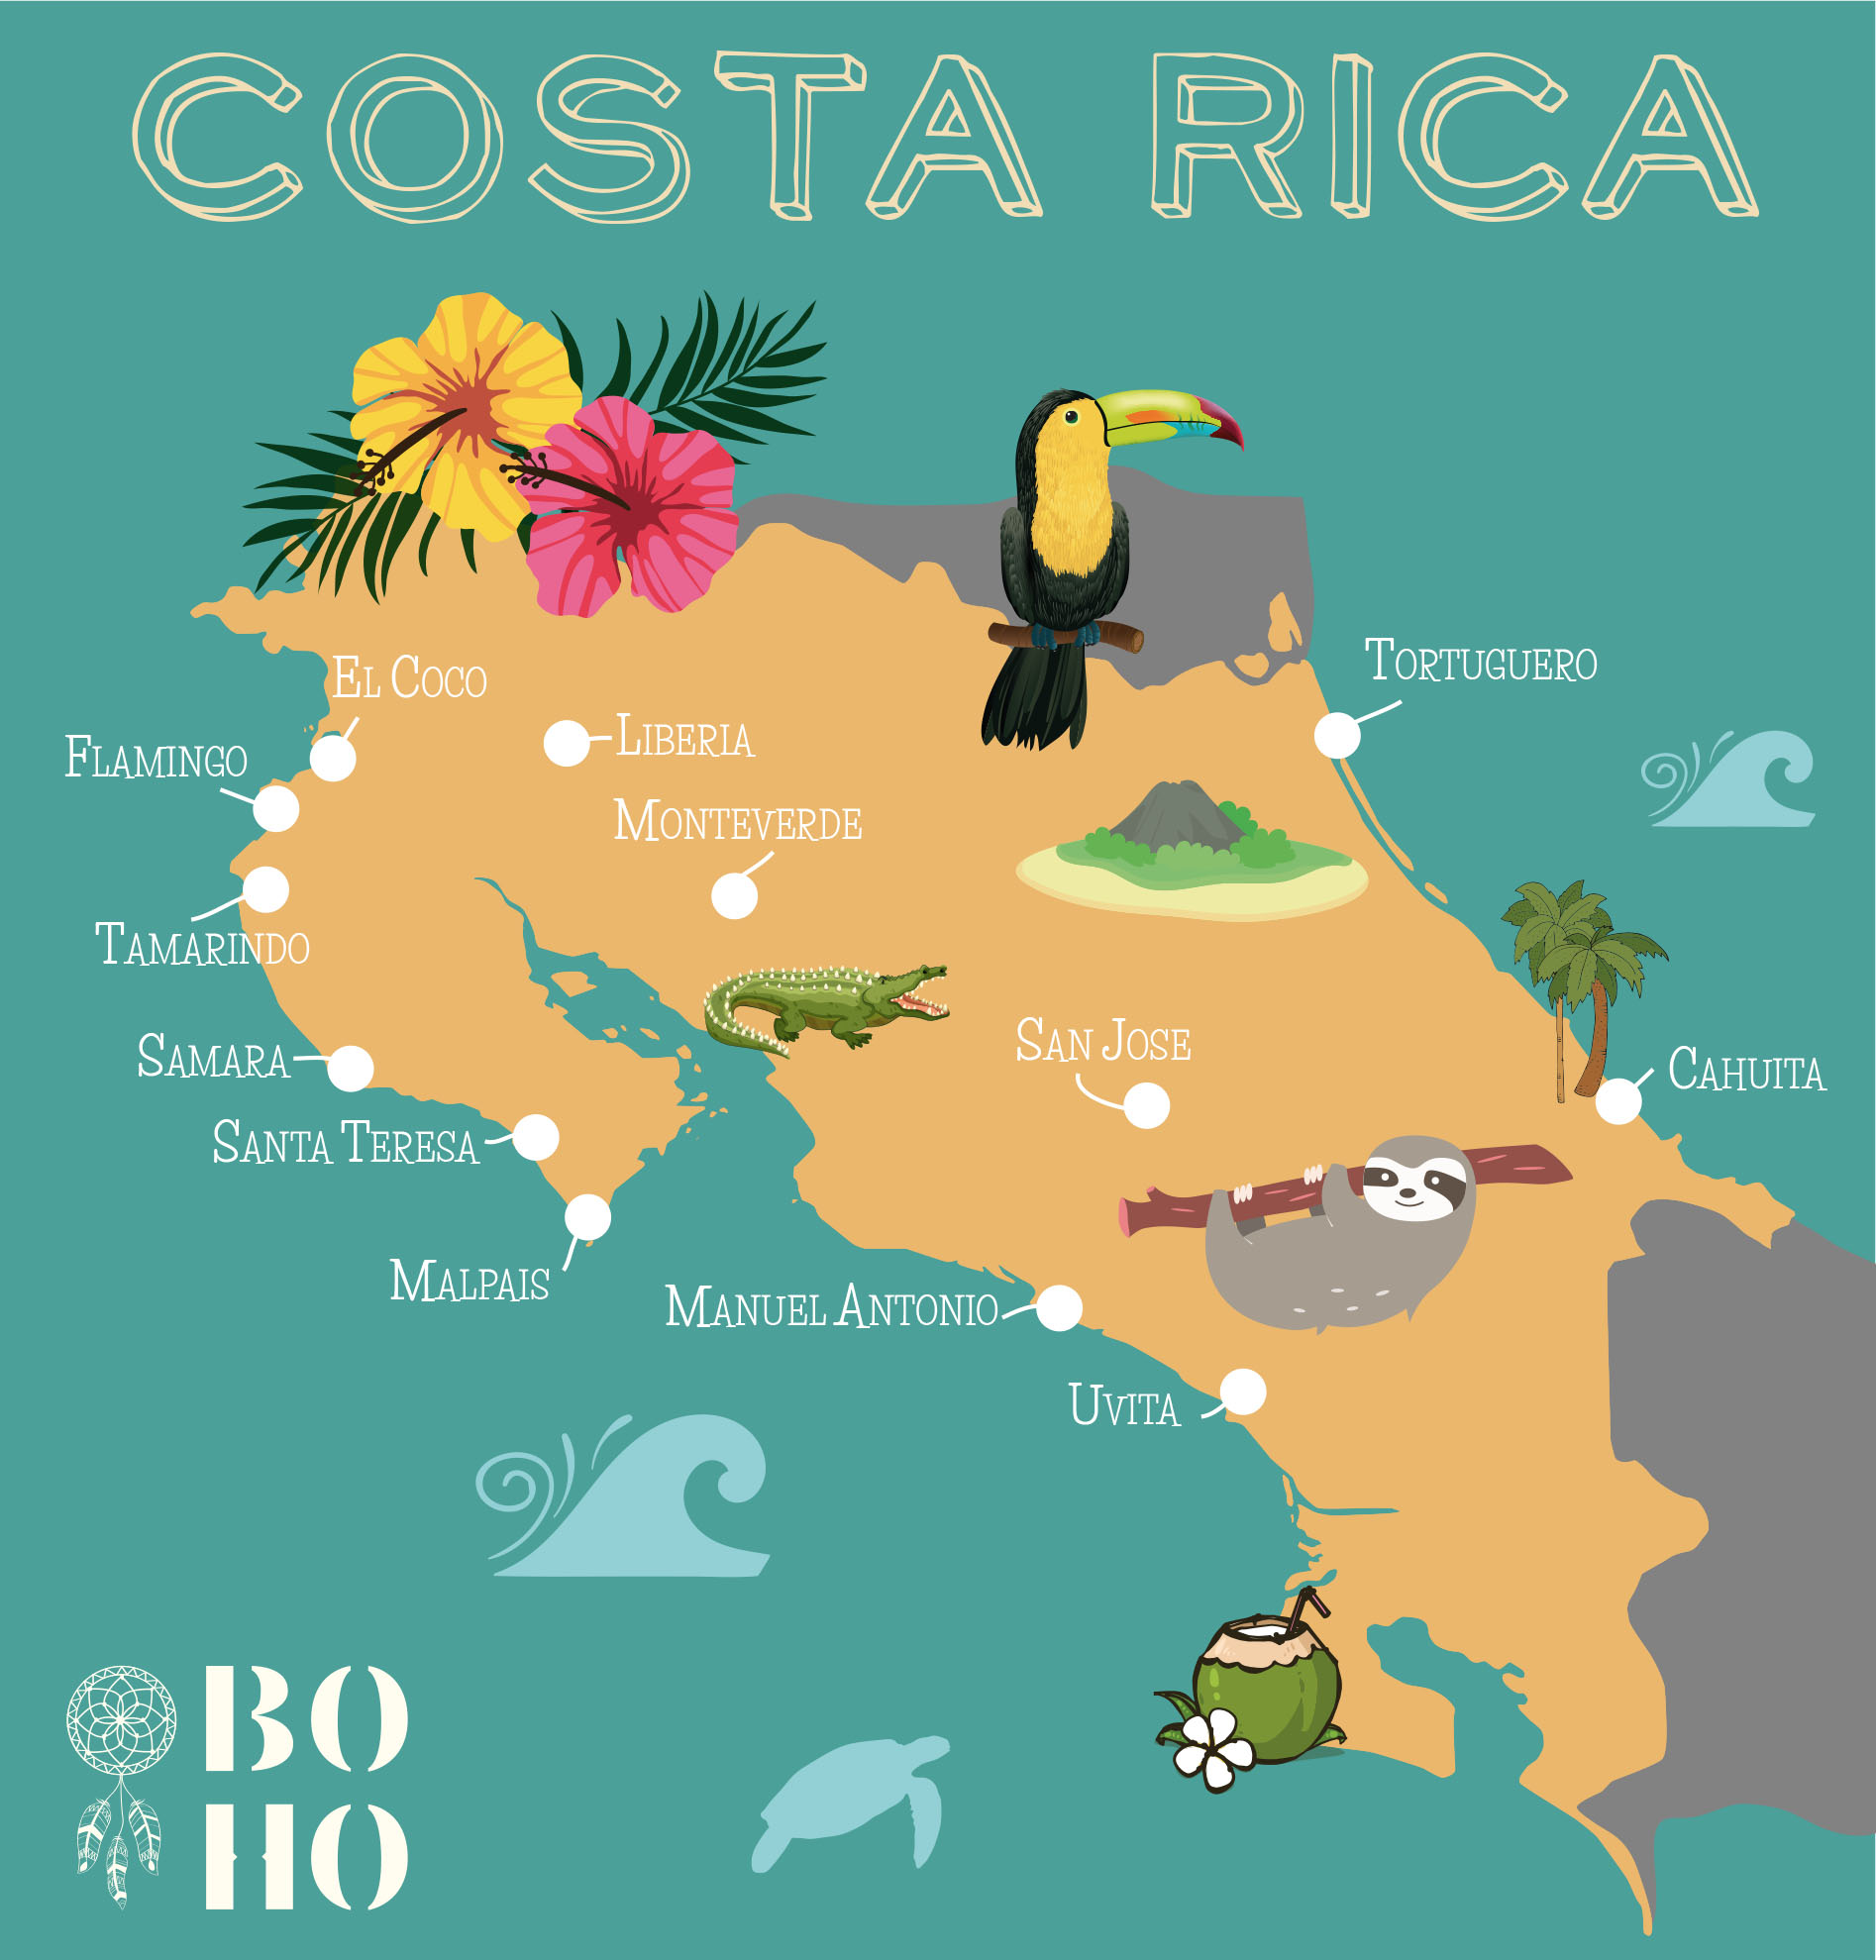 Costa Rica Map BoHo Tamarindo